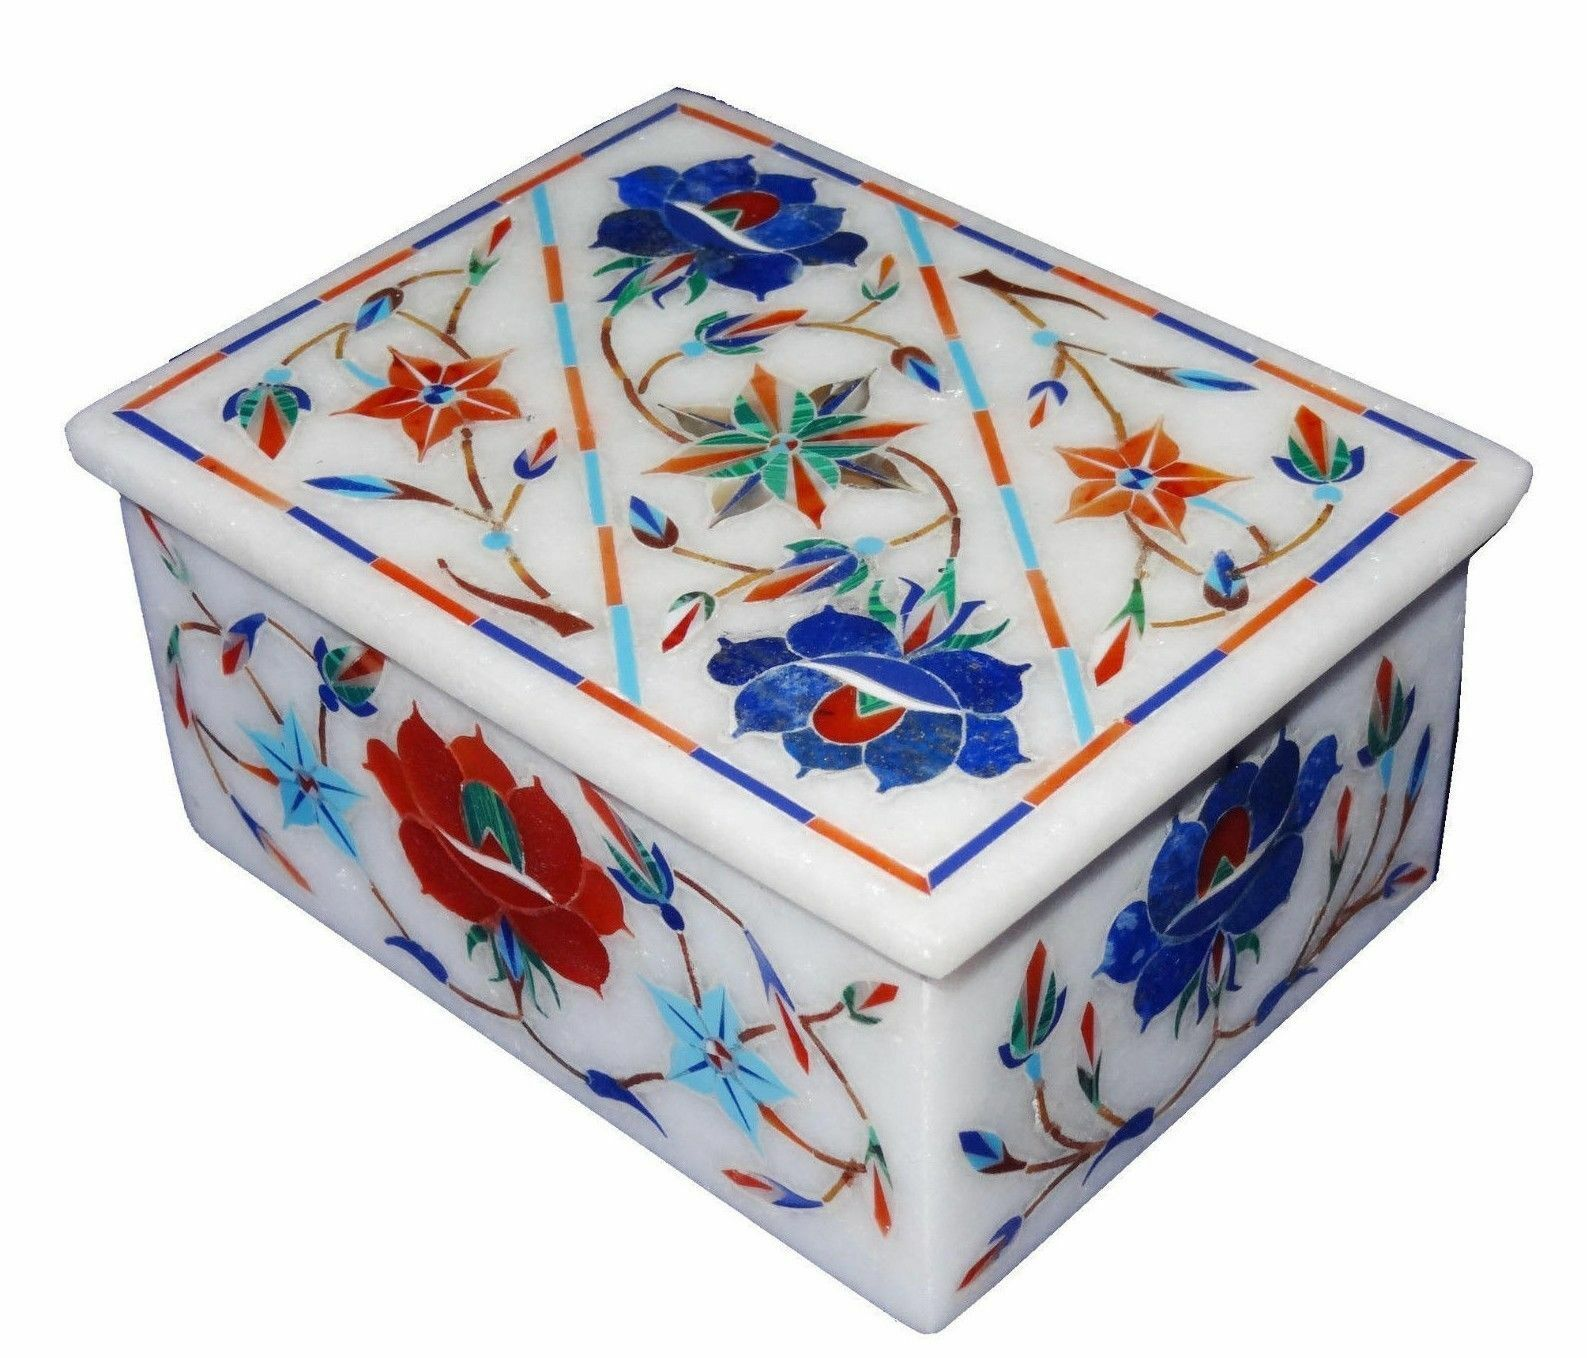 4  x 3  Marble ring Box Semi Precious Stones floral handcrafted inlay work decor